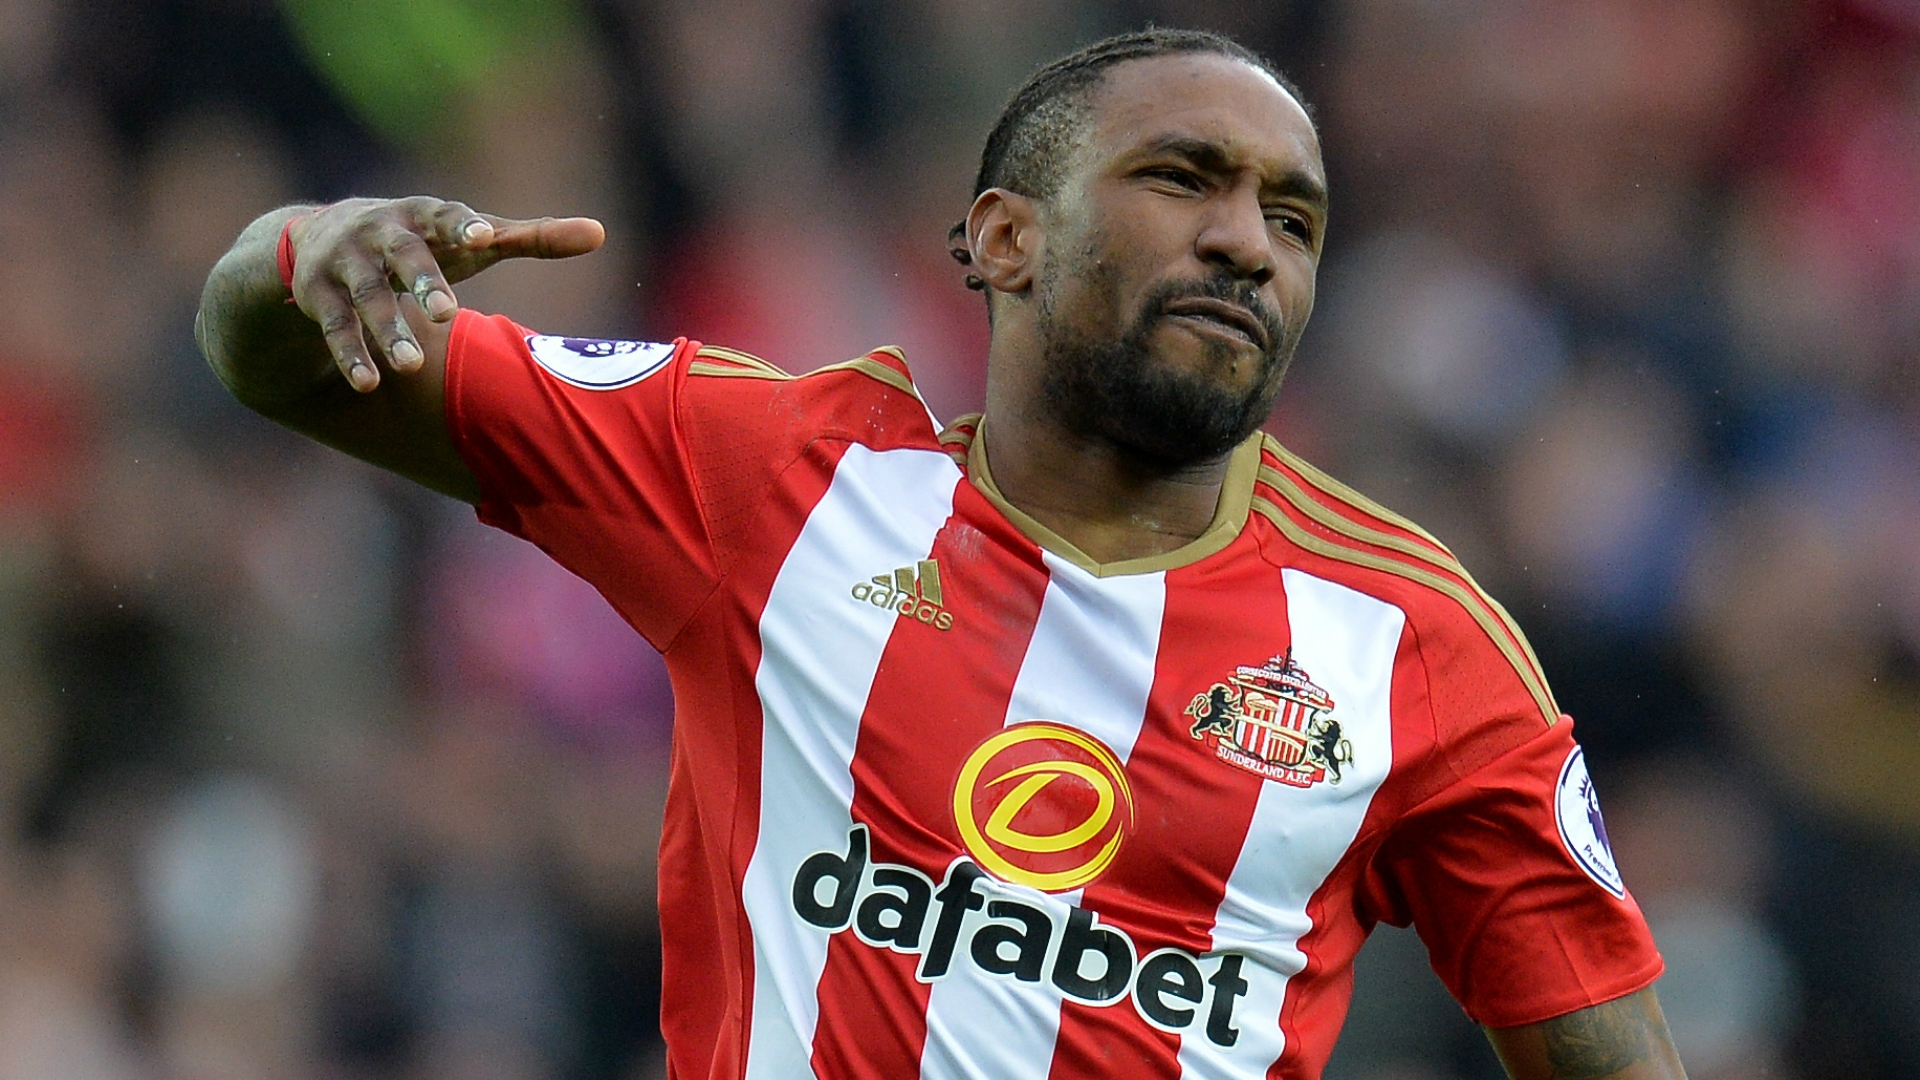 Defoe has enjoyed a good season at Sunderland in spite of the team relegating